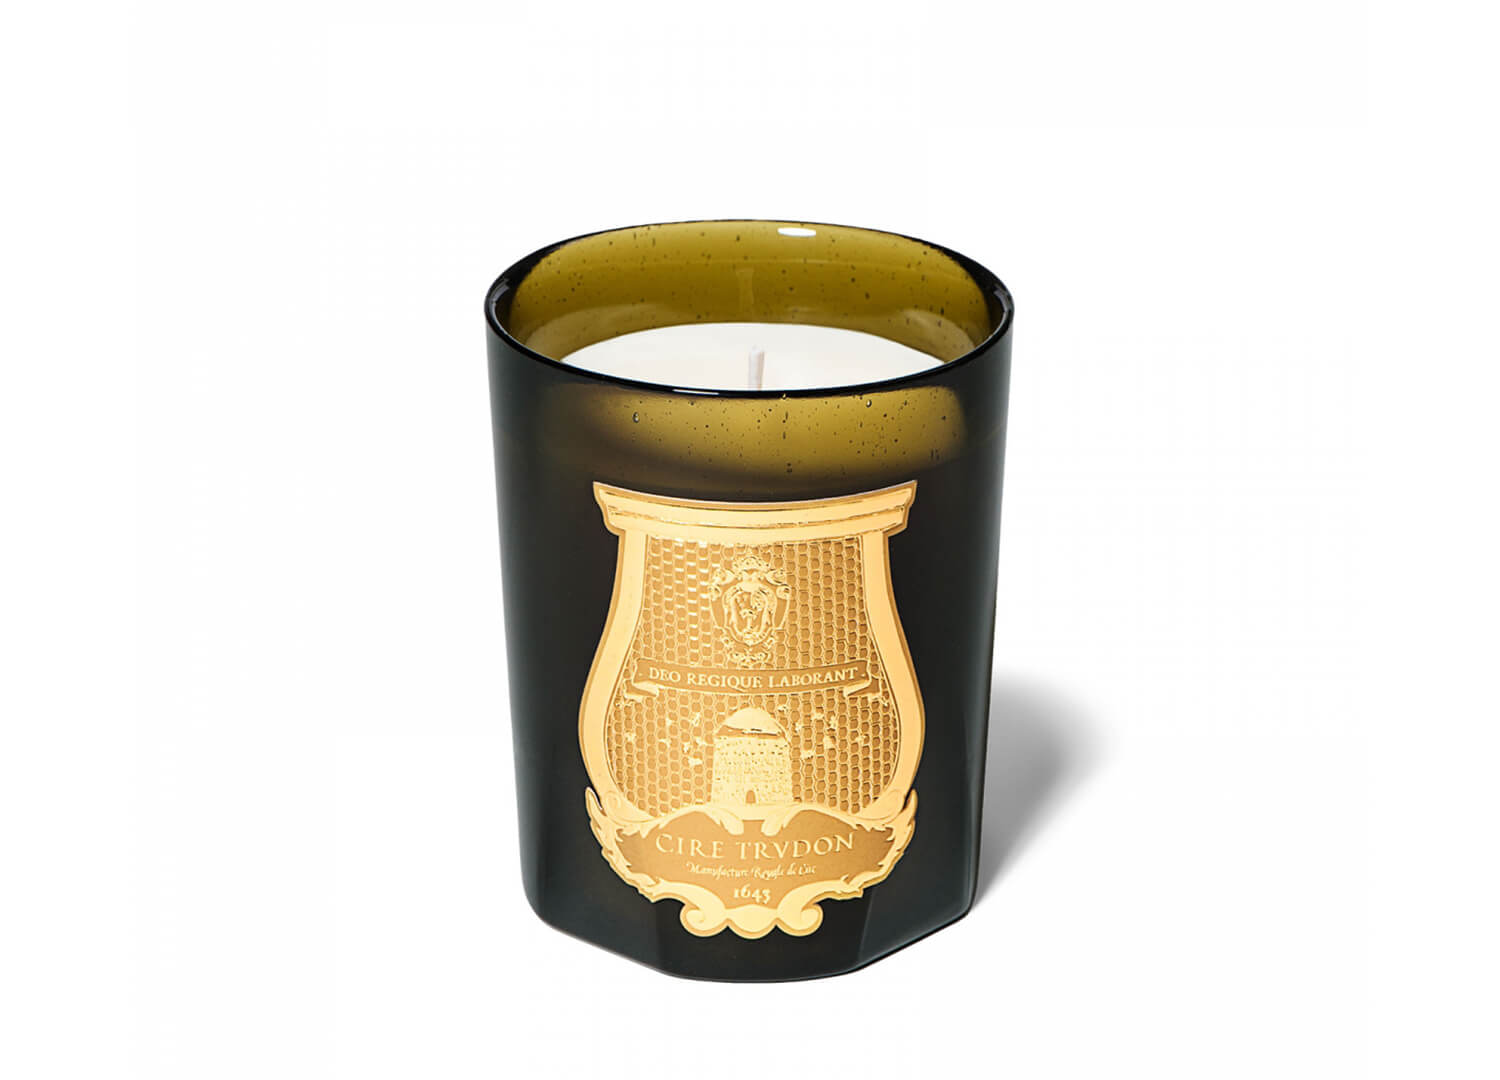 La Marquise Trudon Candles